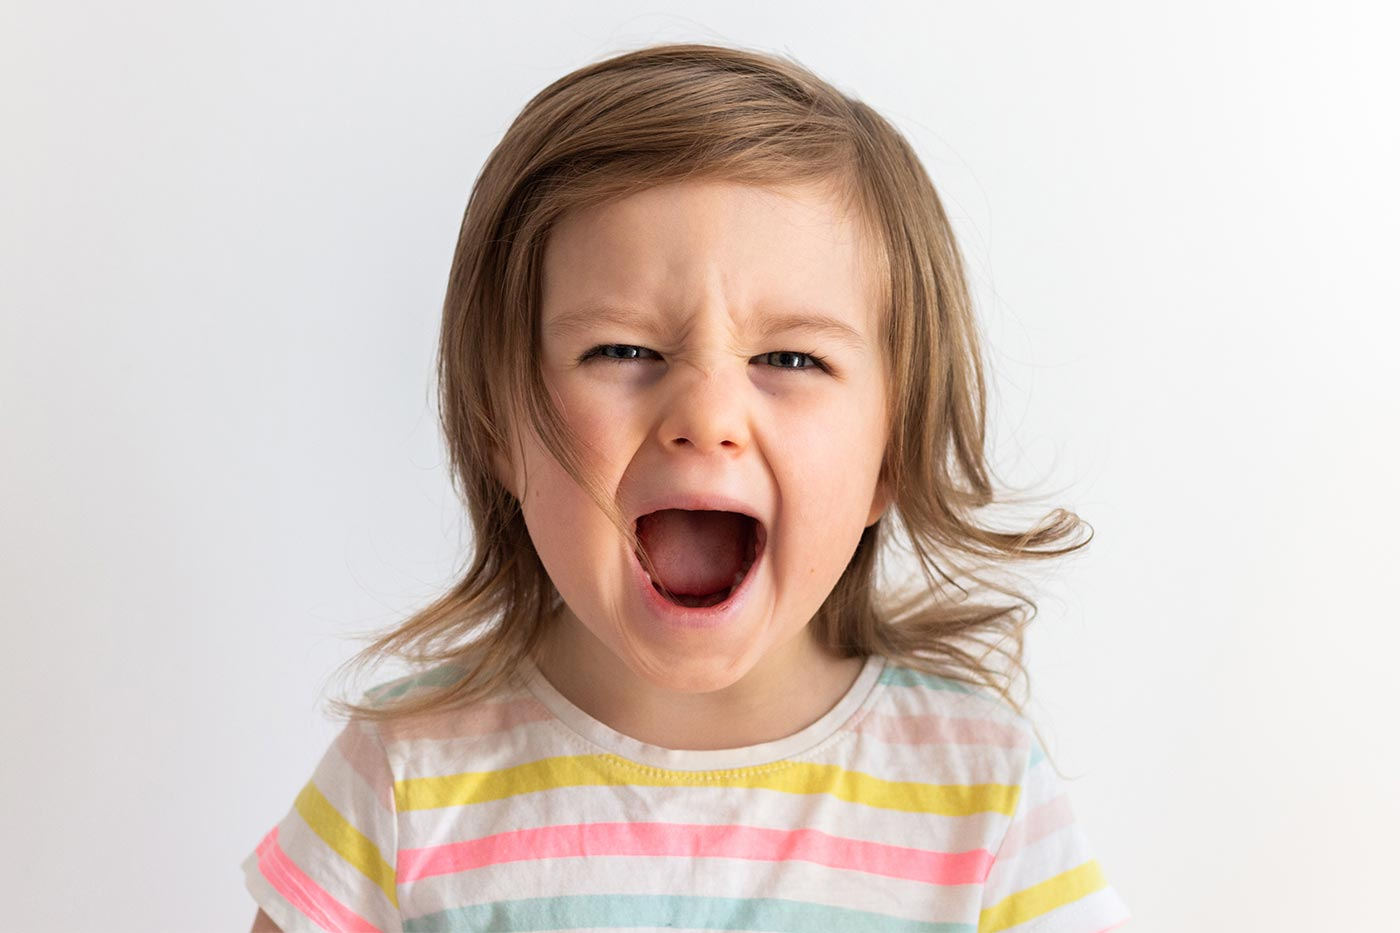 How to Stop Toddler Bedtime Tantrums